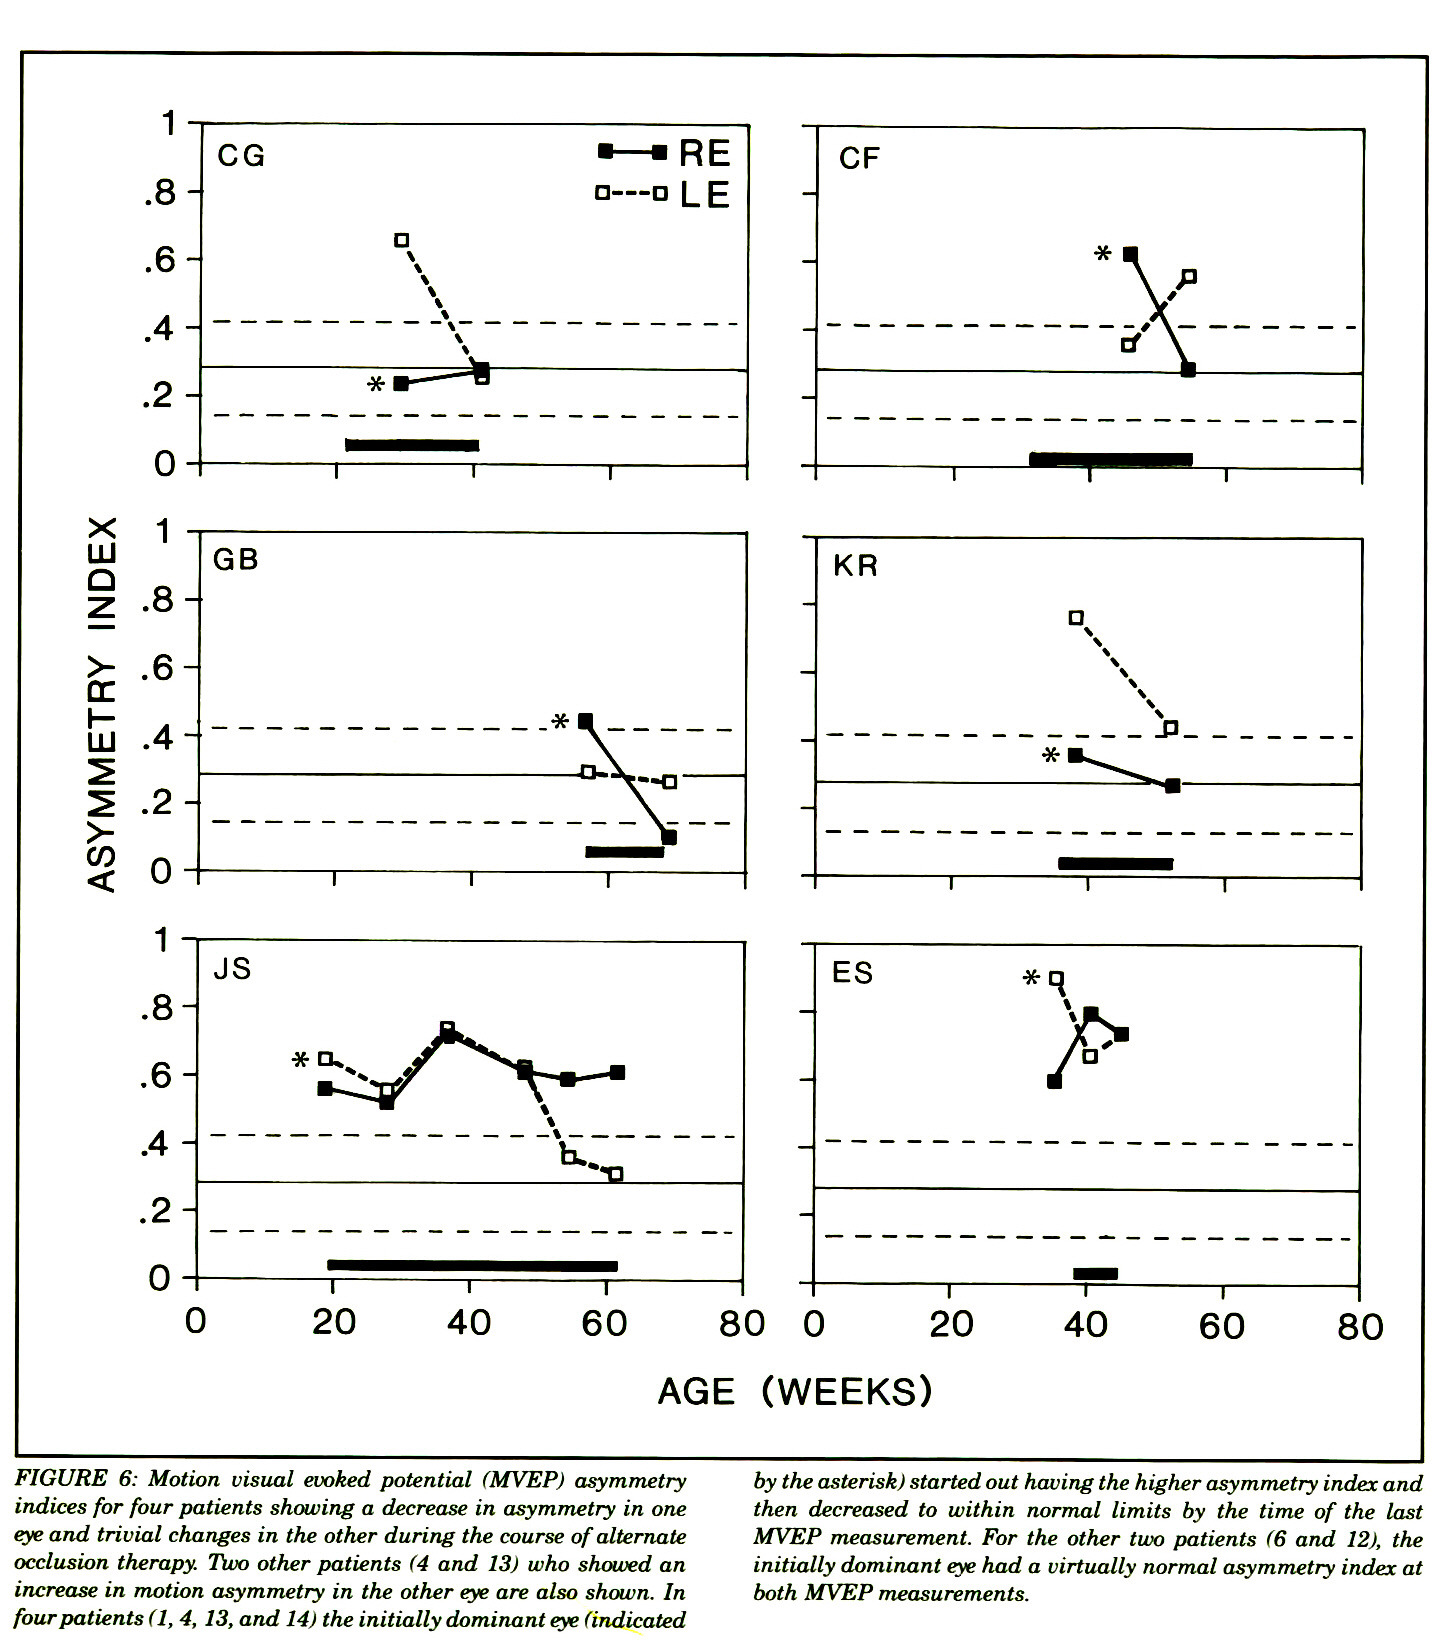 FIGURE 6: Motion visual evoked potential (MVEP) asymmetry indices for four patients showing a decrease in asymmetry in one eye and trivial changes in the other during the course of alternate occlusion therapy. Two other patients (4 and 13) who showed an increase in motion asymmetry in the other eye are also shown. In four patients (1, 4, 13, and 14) the initially dominant eye (indicated by the asterisk) started out having the higher asymmetry index and then decreased to within normal limits by the time of the last MVEP measurement. For the other two patients (6 and 12), the initially dominant eye had a virtually normal asymmetry index at both MVEP measurements.